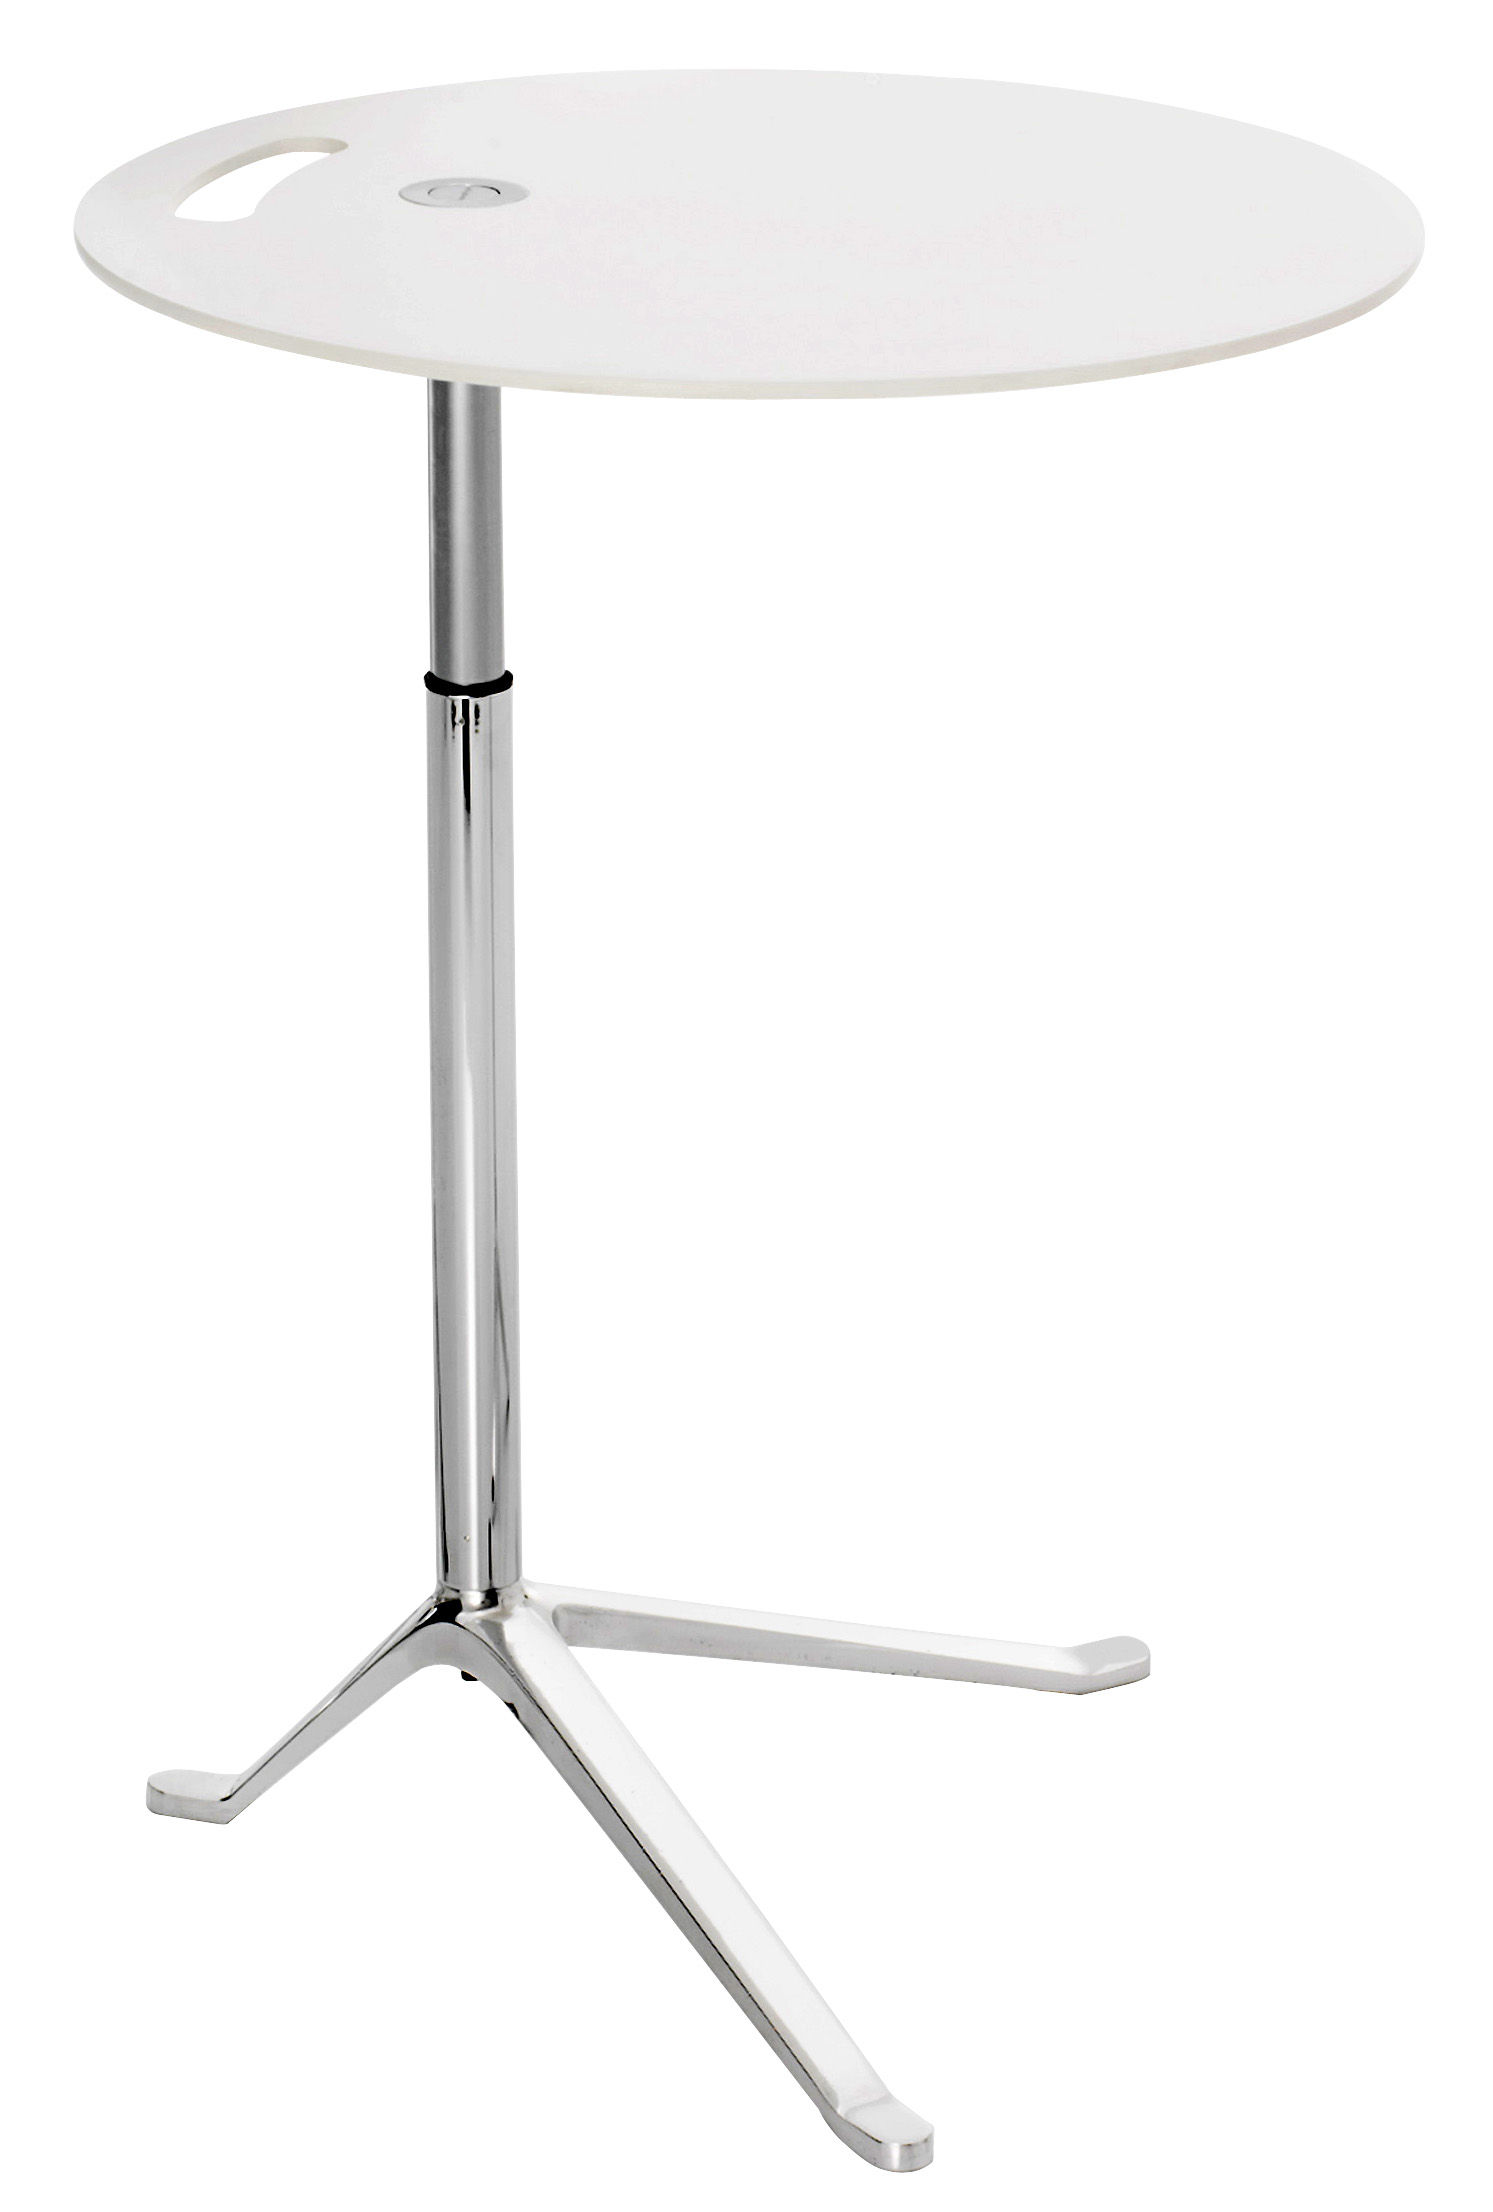 Little Friend Small Table Adjustable Height H 50 73